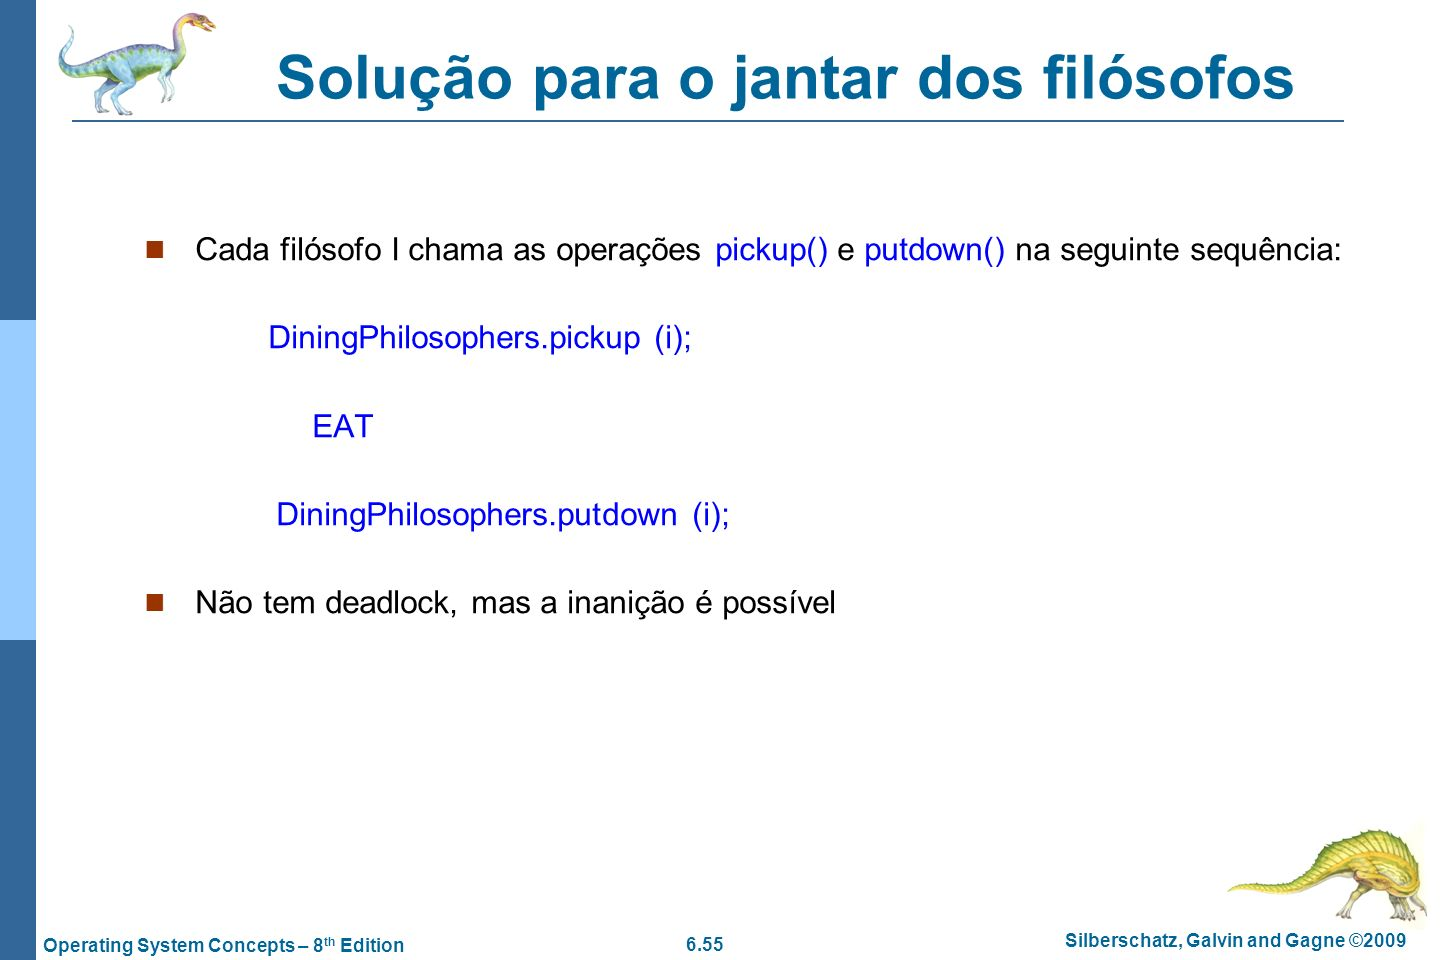 6.55 Silberschatz, Galvin and Gagne ©2009 Operating System Concepts – 8 th Edition Cada filósofo I chama as operações pickup() e putdown() na seguinte